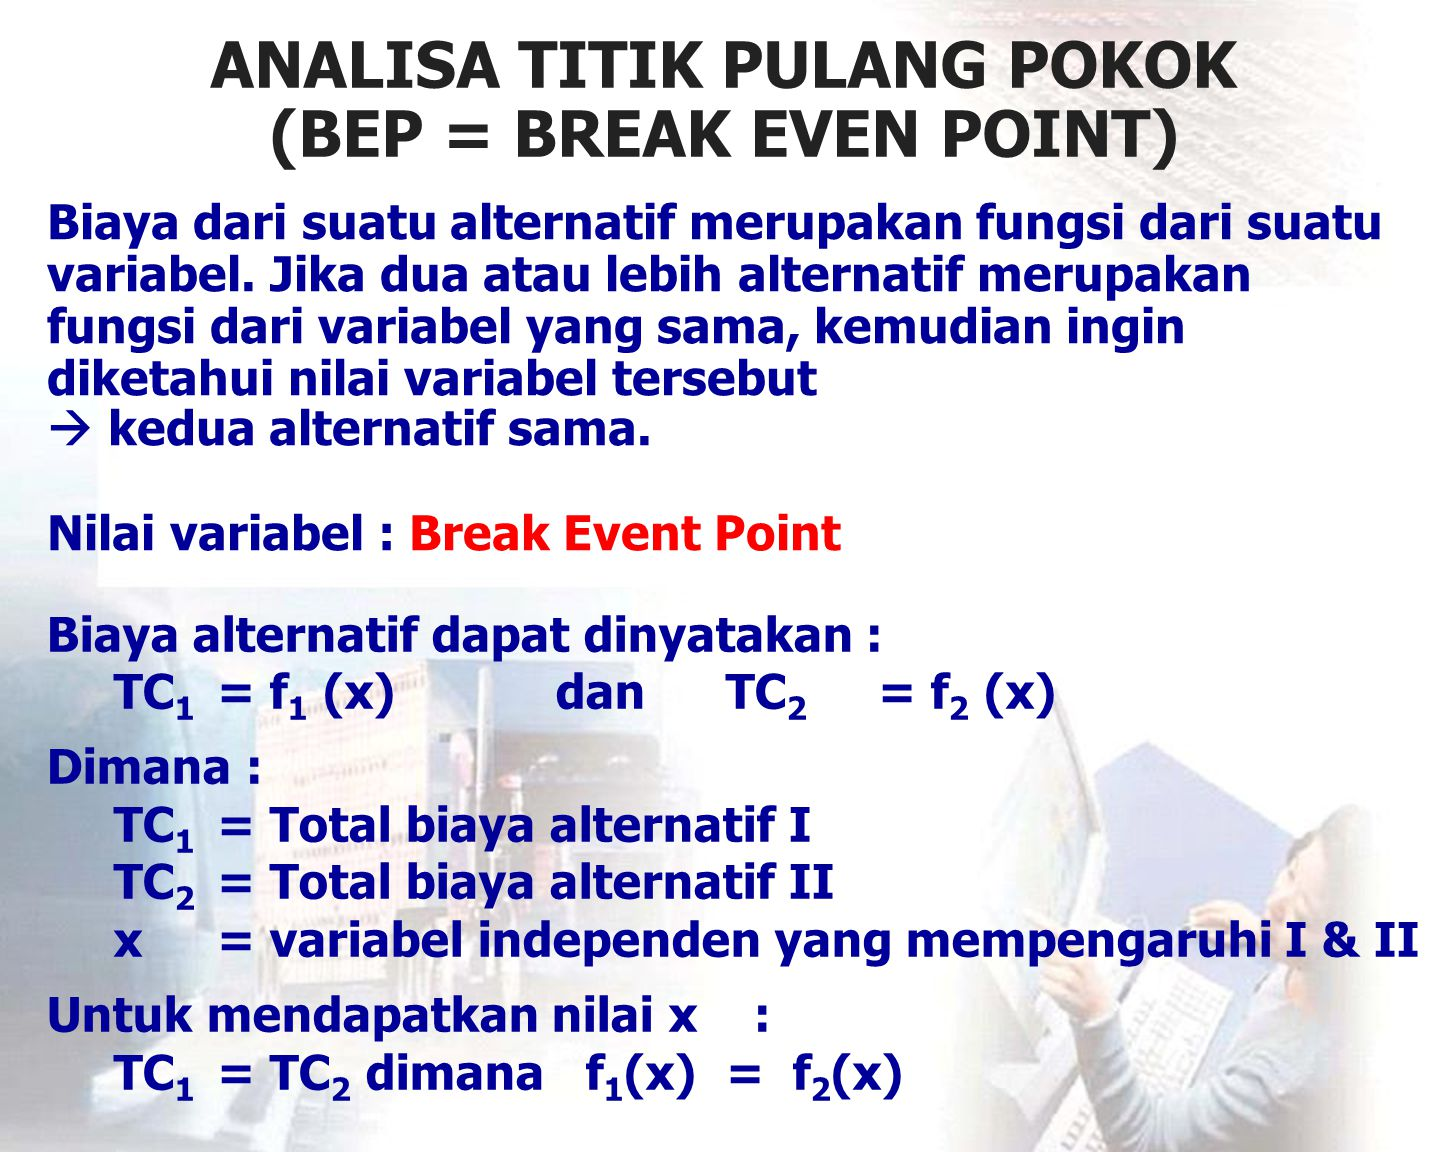 ANALISA TITIK PULANG POKOK (BEP = BREAK EVEN POINT)